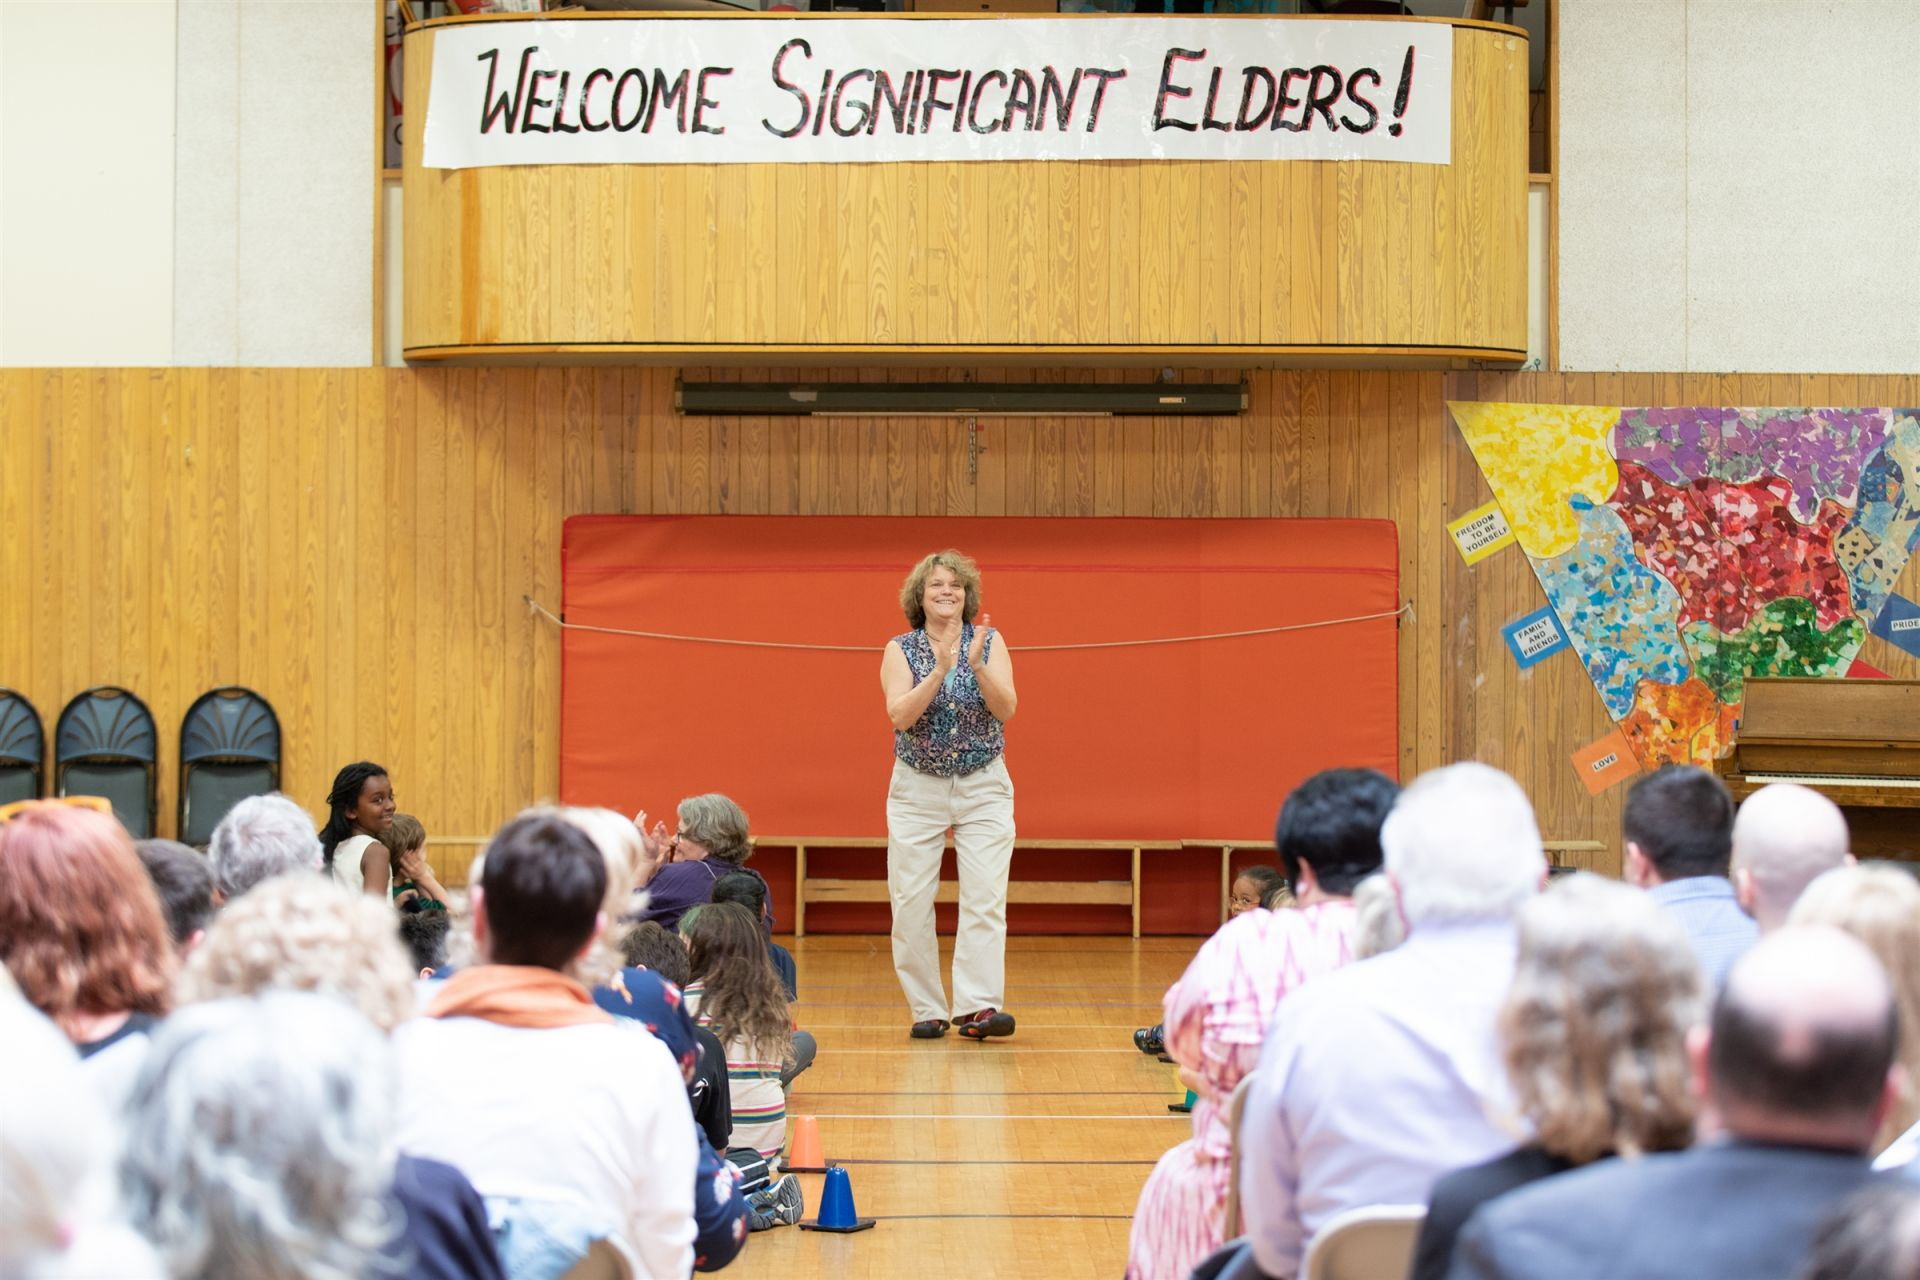 Marytha opens the assembly for Significant Elders Day. A sign in the background says,